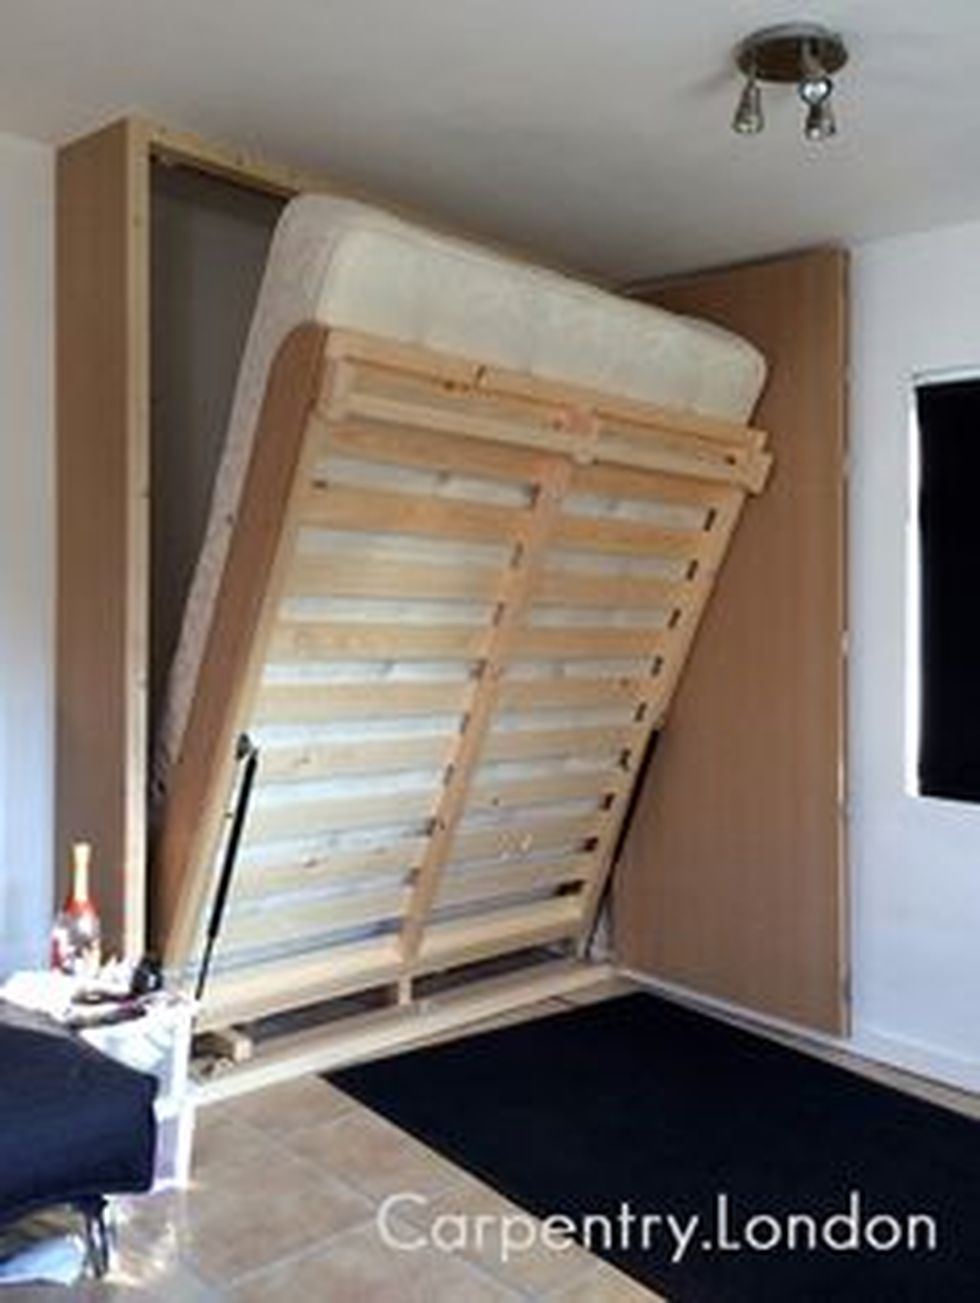 - Saving Space With Creative Folding Bed Ideas 19 - Hoommy.com